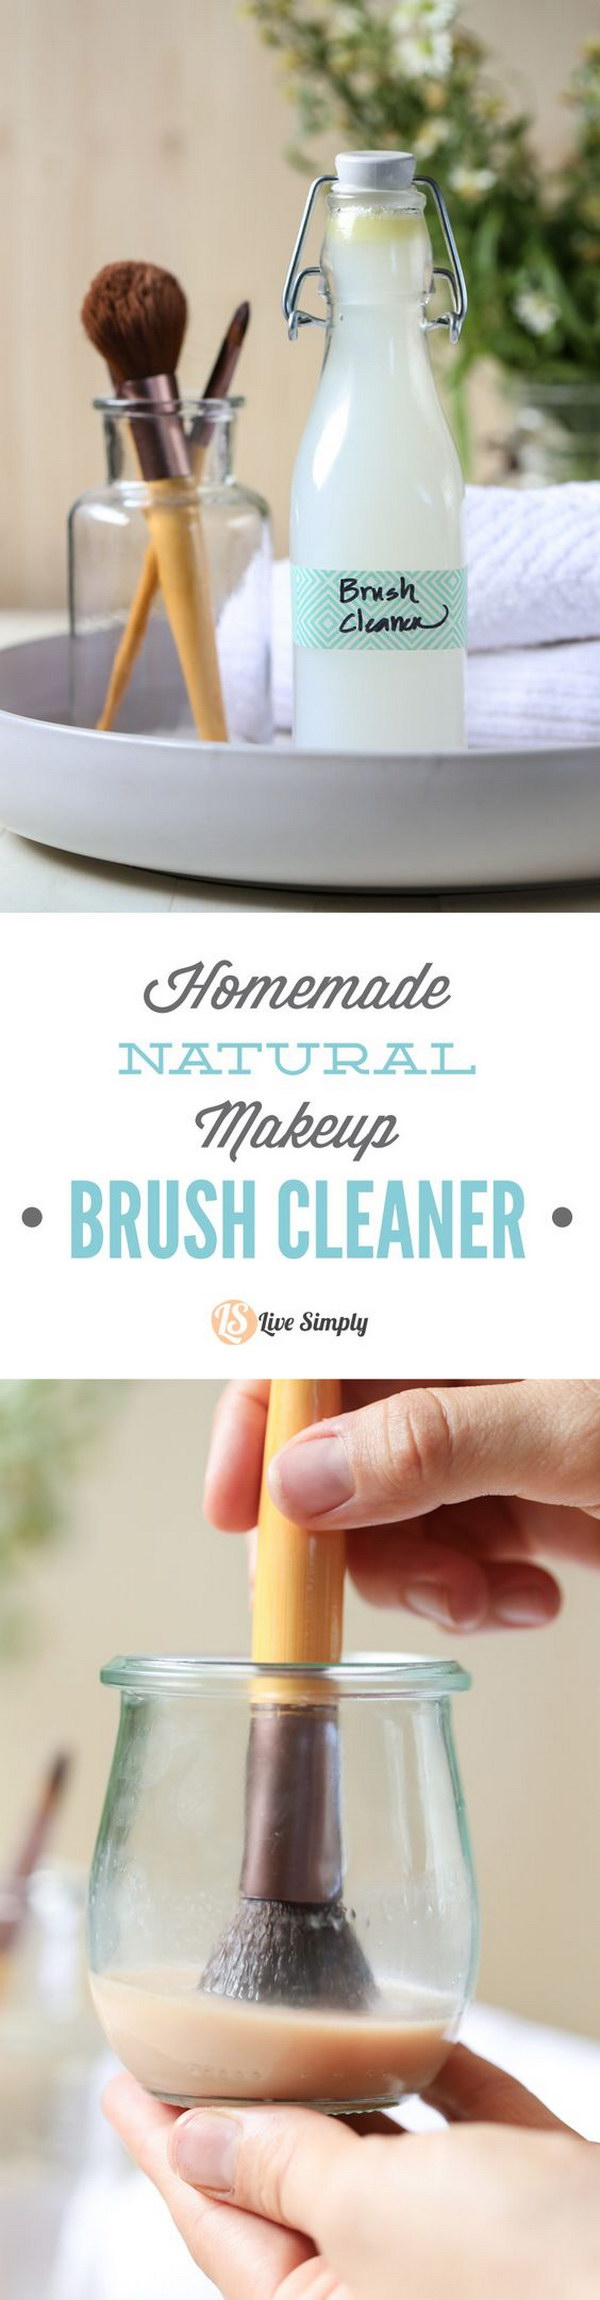 Homemade Natural Makeup Brush Cleaner.